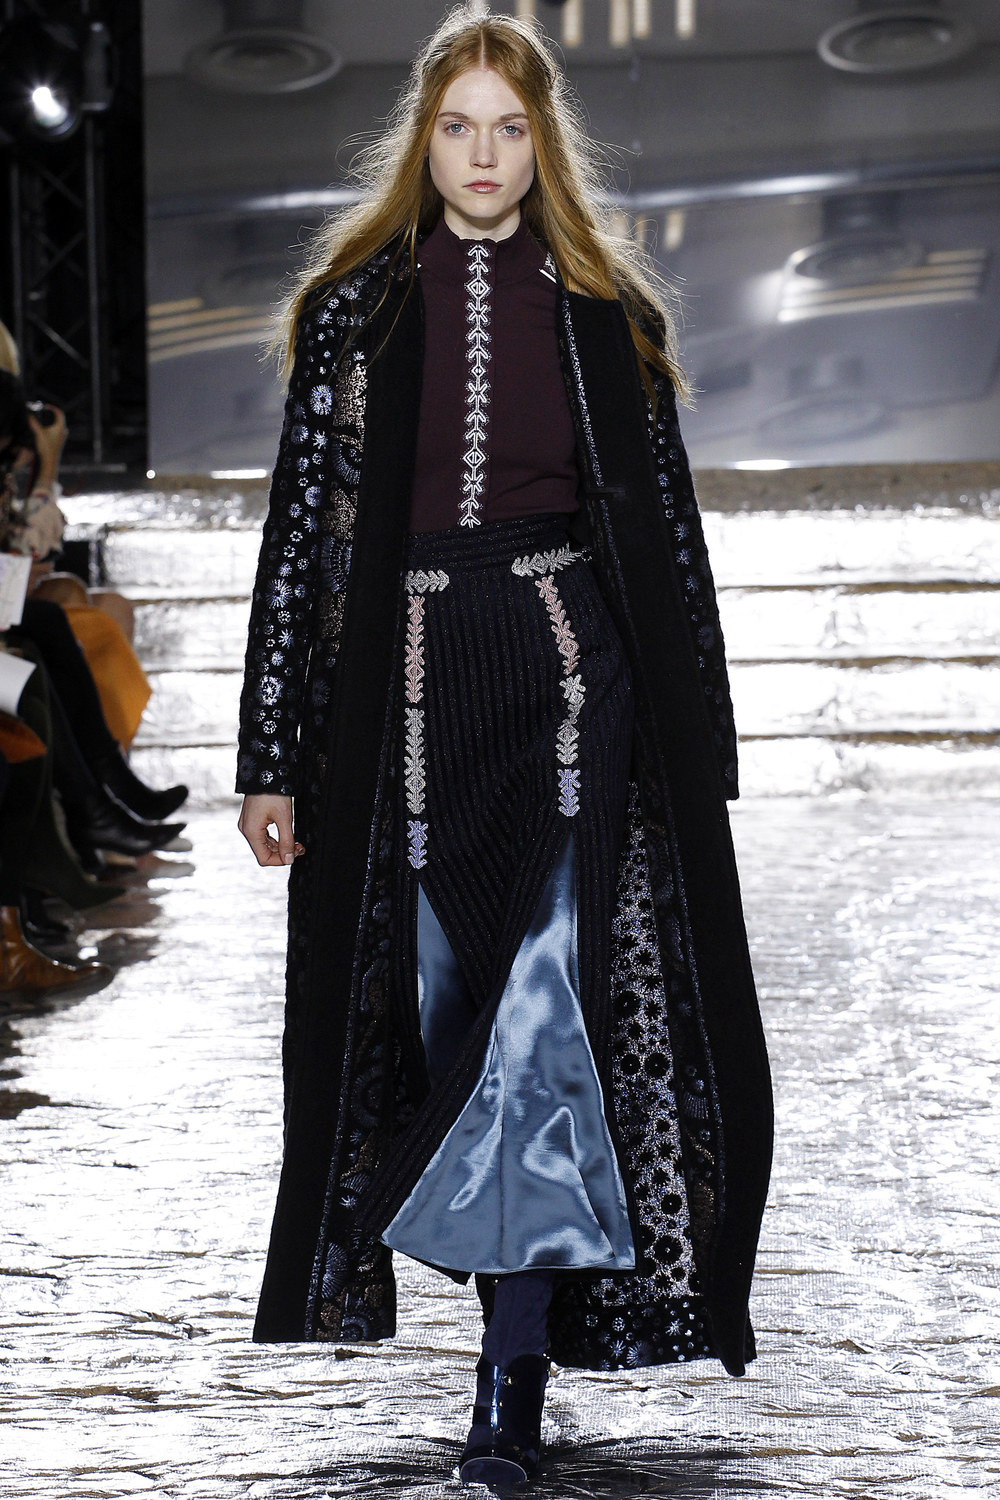 Peter-Pilotto-Autumn-Winter-Fall-2016-London-Fashion-Week-1.jpg